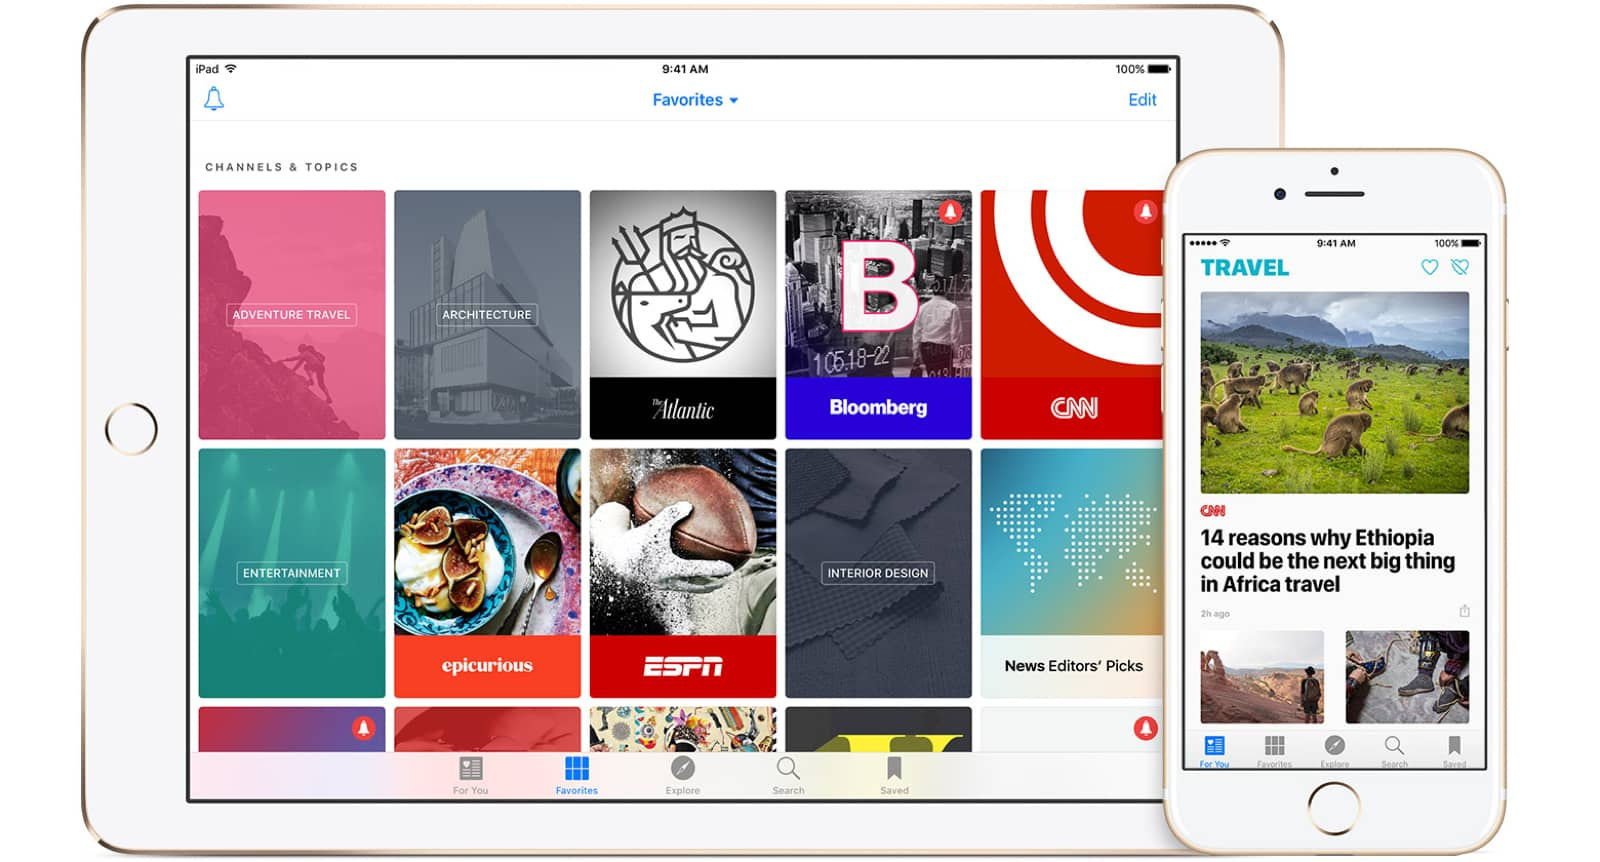 Apple News on iPad and iPhone are about to get more ads and micropayments